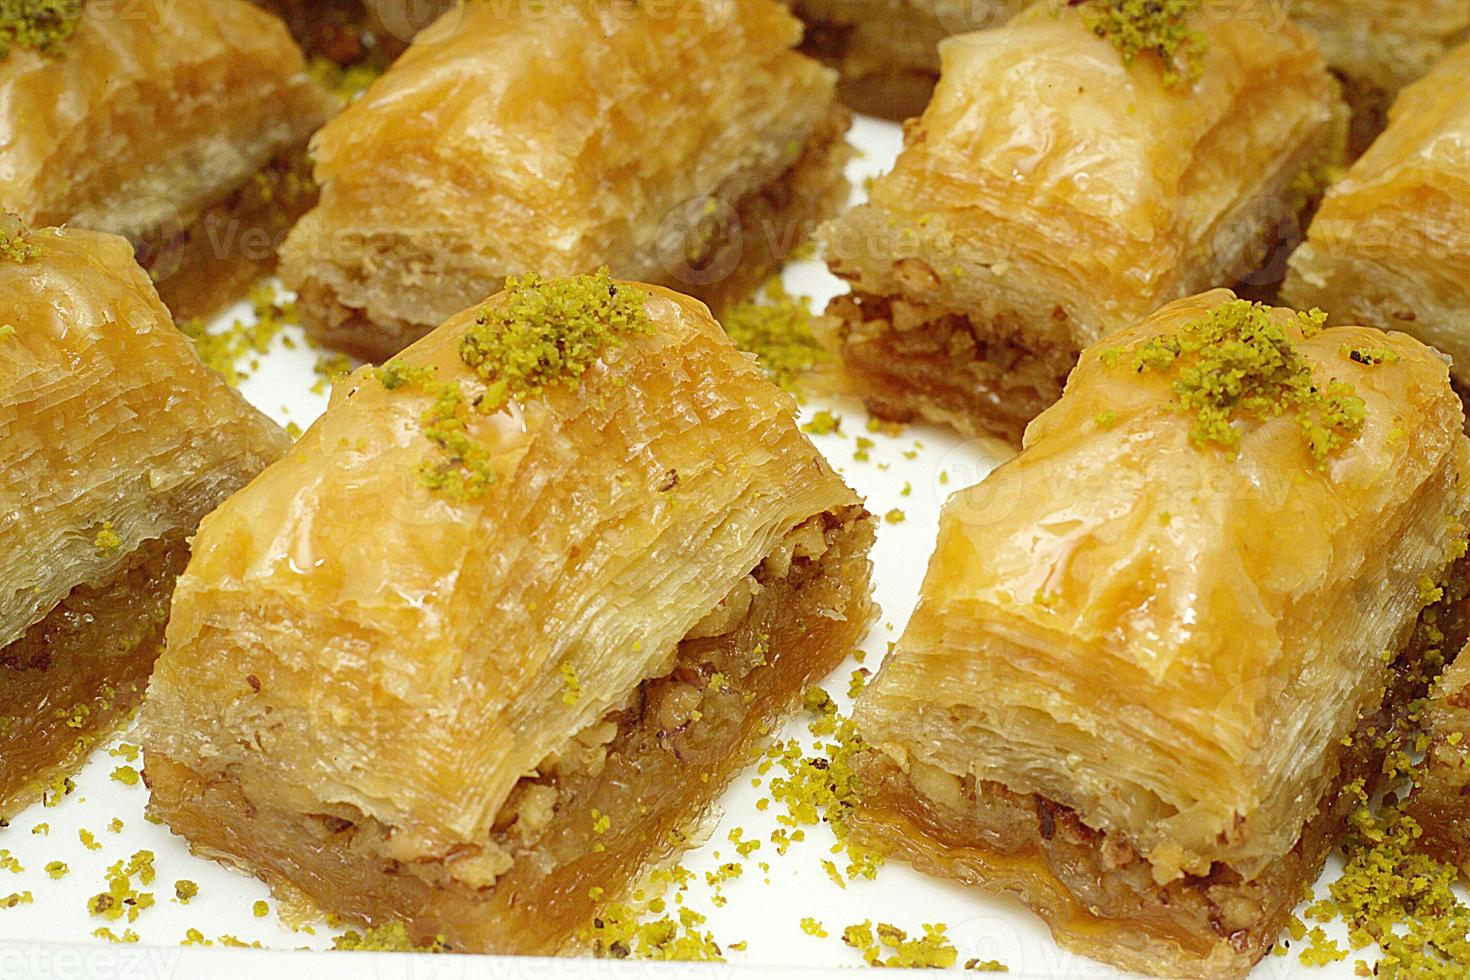 restauration. dessert, baklava turc photo